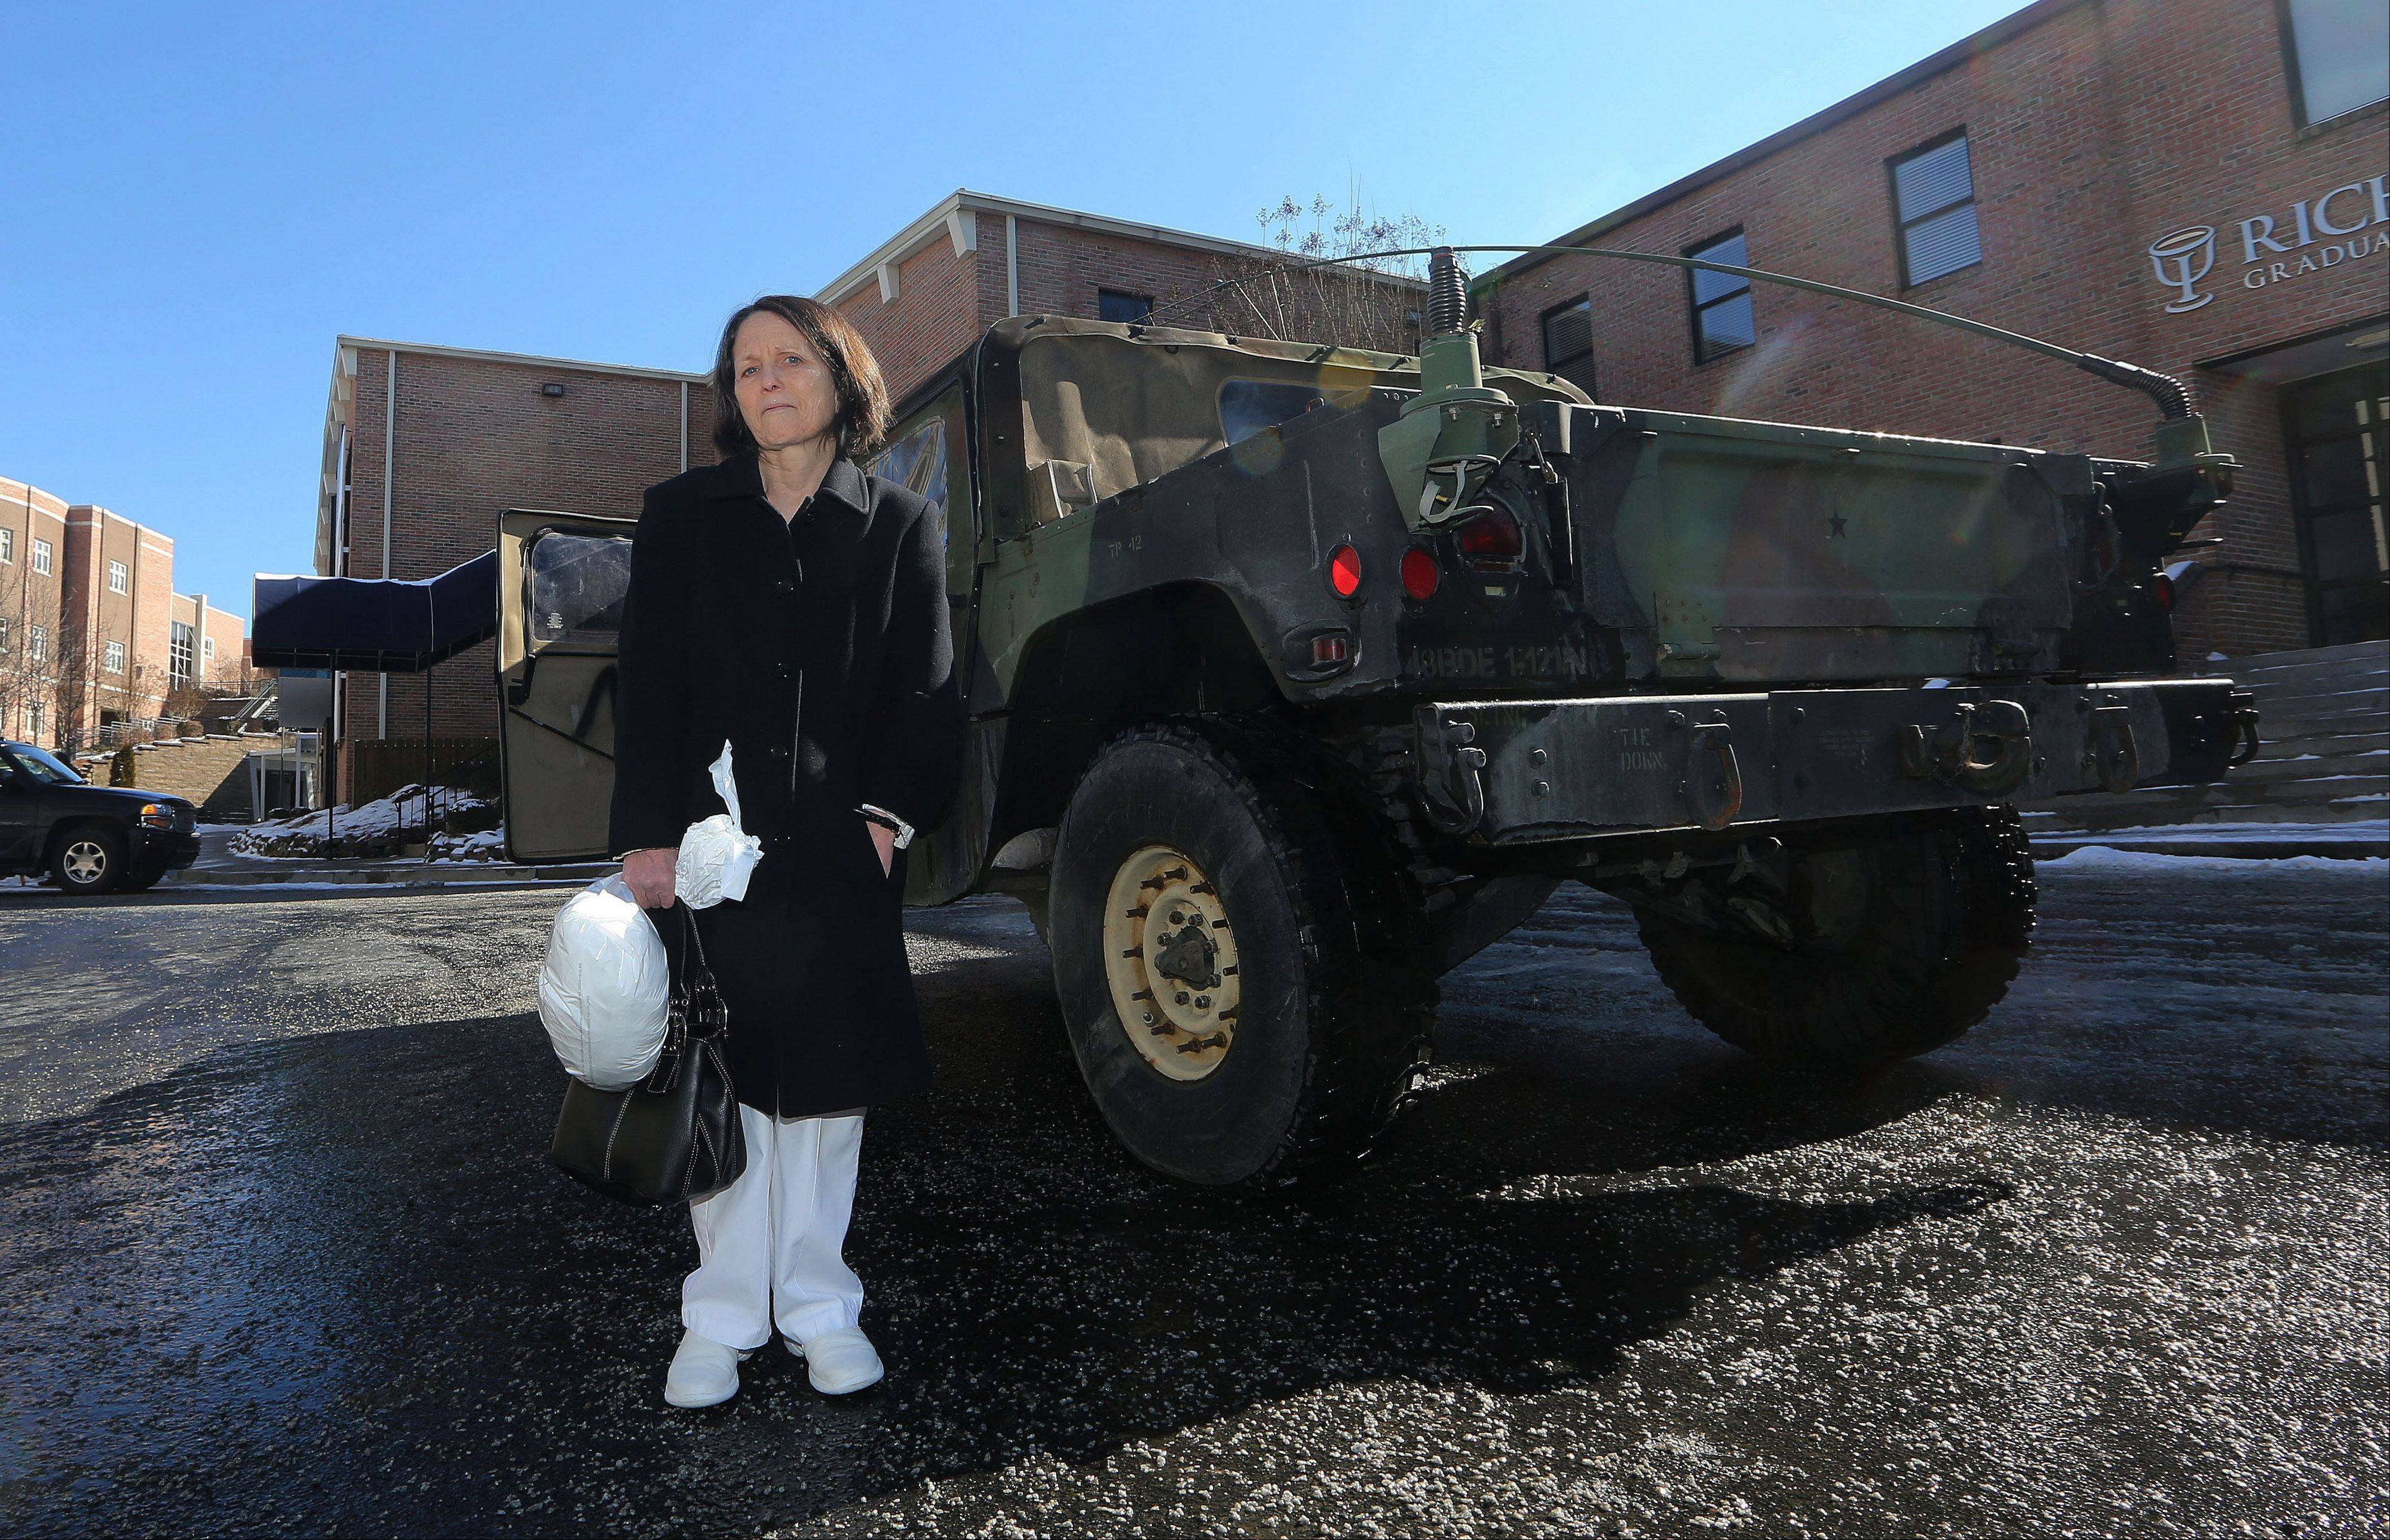 Lila Gunter waits next to a Georgia National Guard vehicle before they take her to pick up her car after it was towed in the winter storm that swept across the state Thursday, Jan. 30, 2014, in Atlanta. The Guard and the Georgia State Patrol are offering rides to motorist who had in abandon their cars.